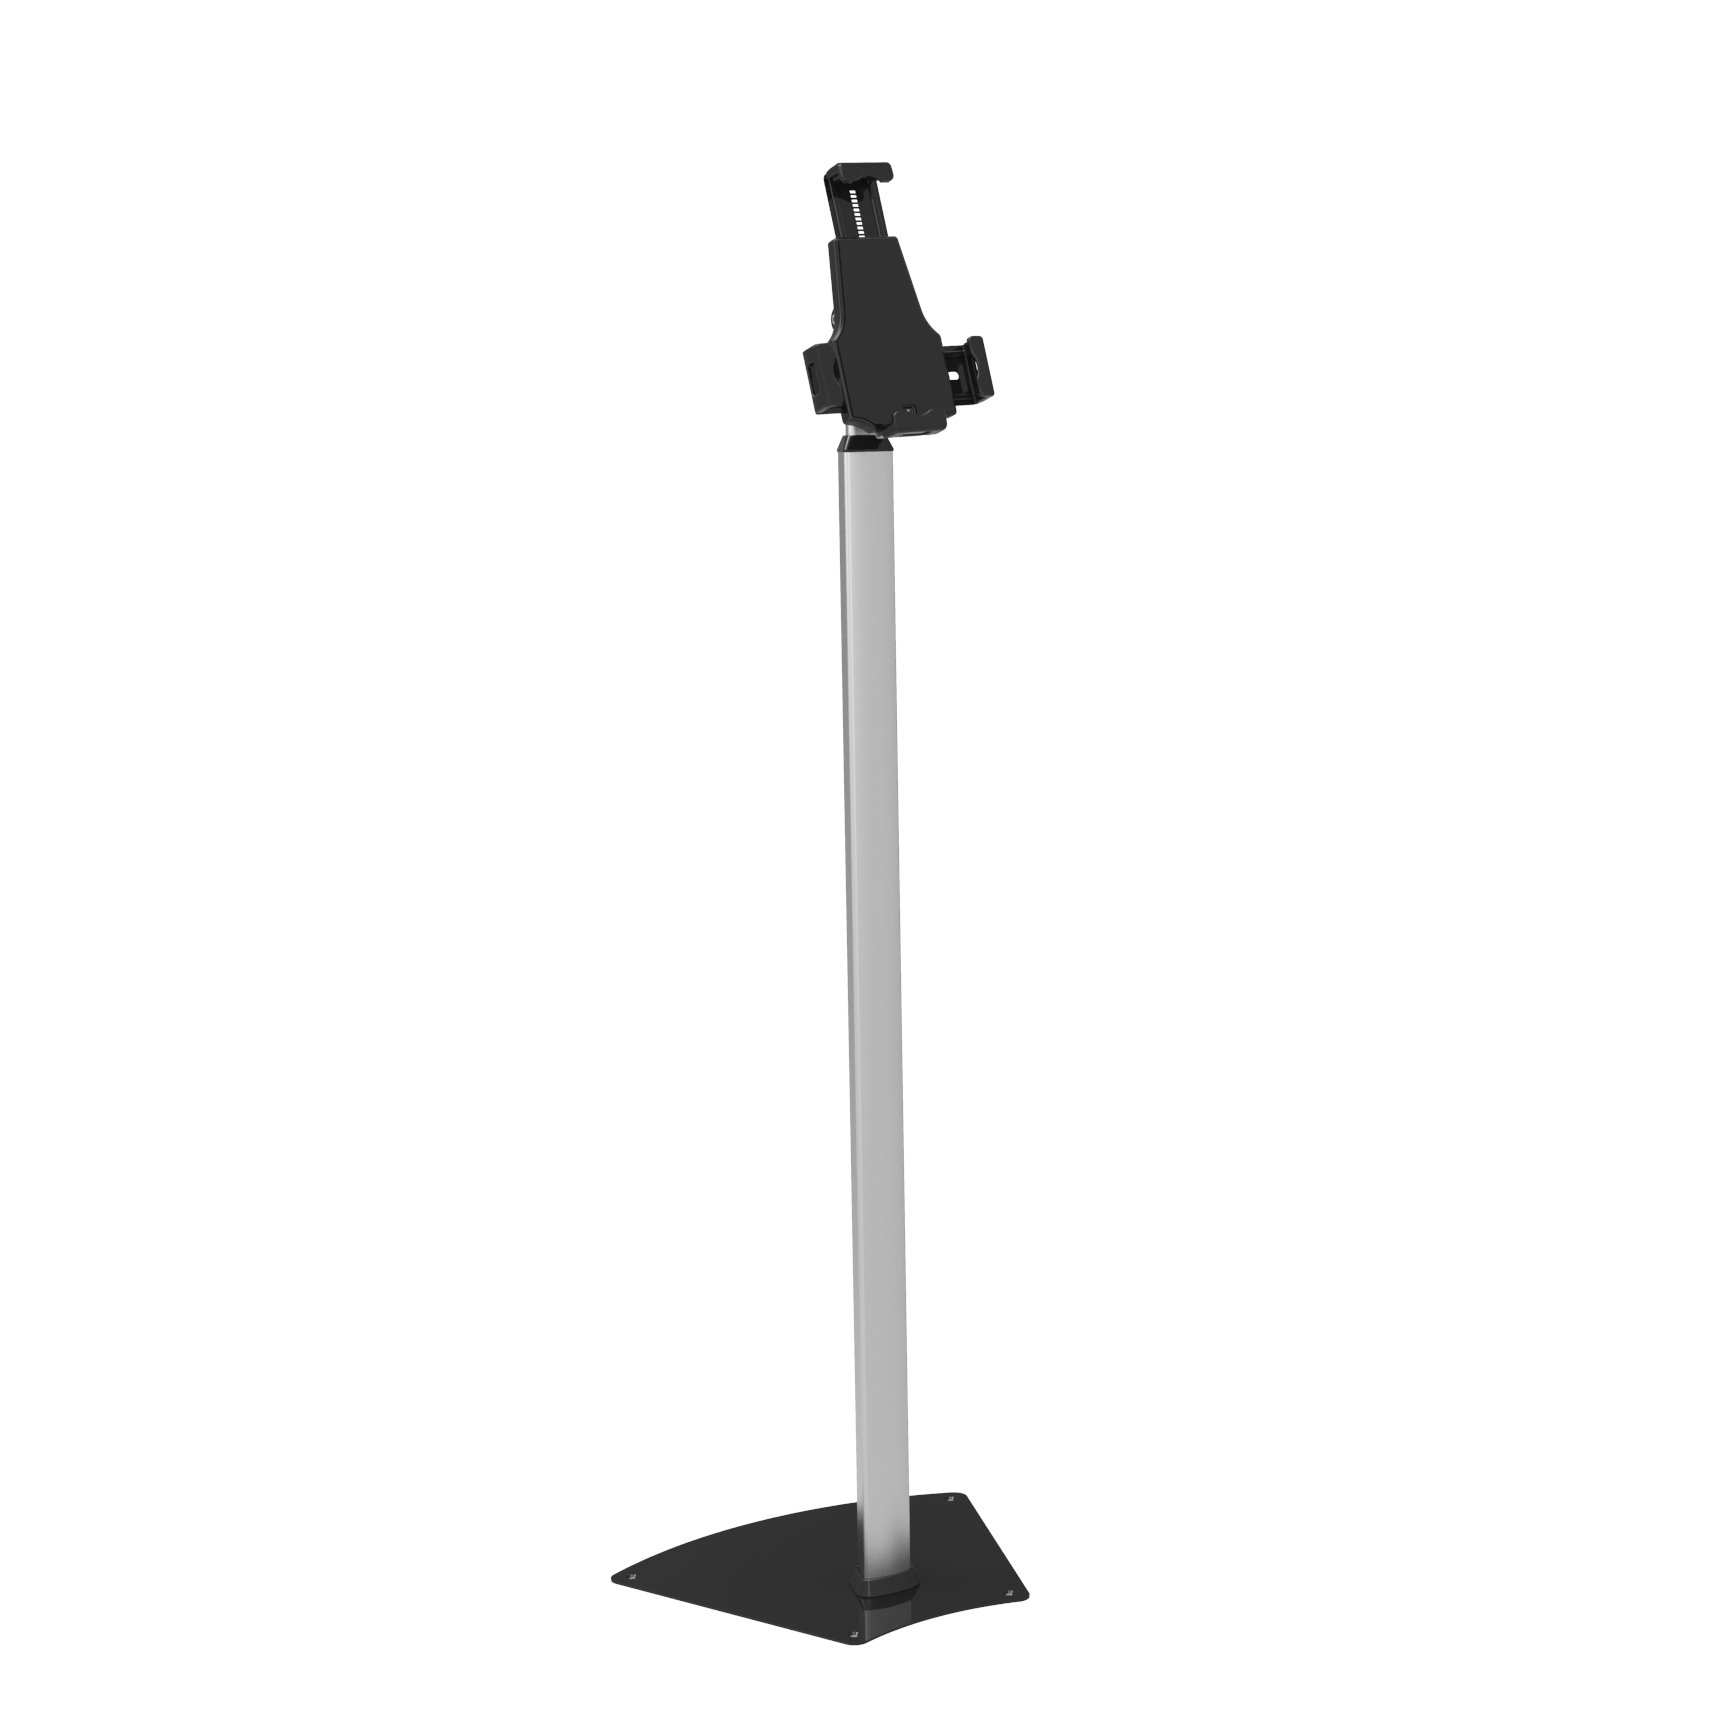 Anti-Theft Adjustable Tablet Security Stand - Universal Metal Floor Mount Tablet Holder w/Lock, 360 ° Rotation, Works w/iPad Mini, Kindle Fire HD, Samsung Galaxy, Android Tablets - Pyle PSPADLK62